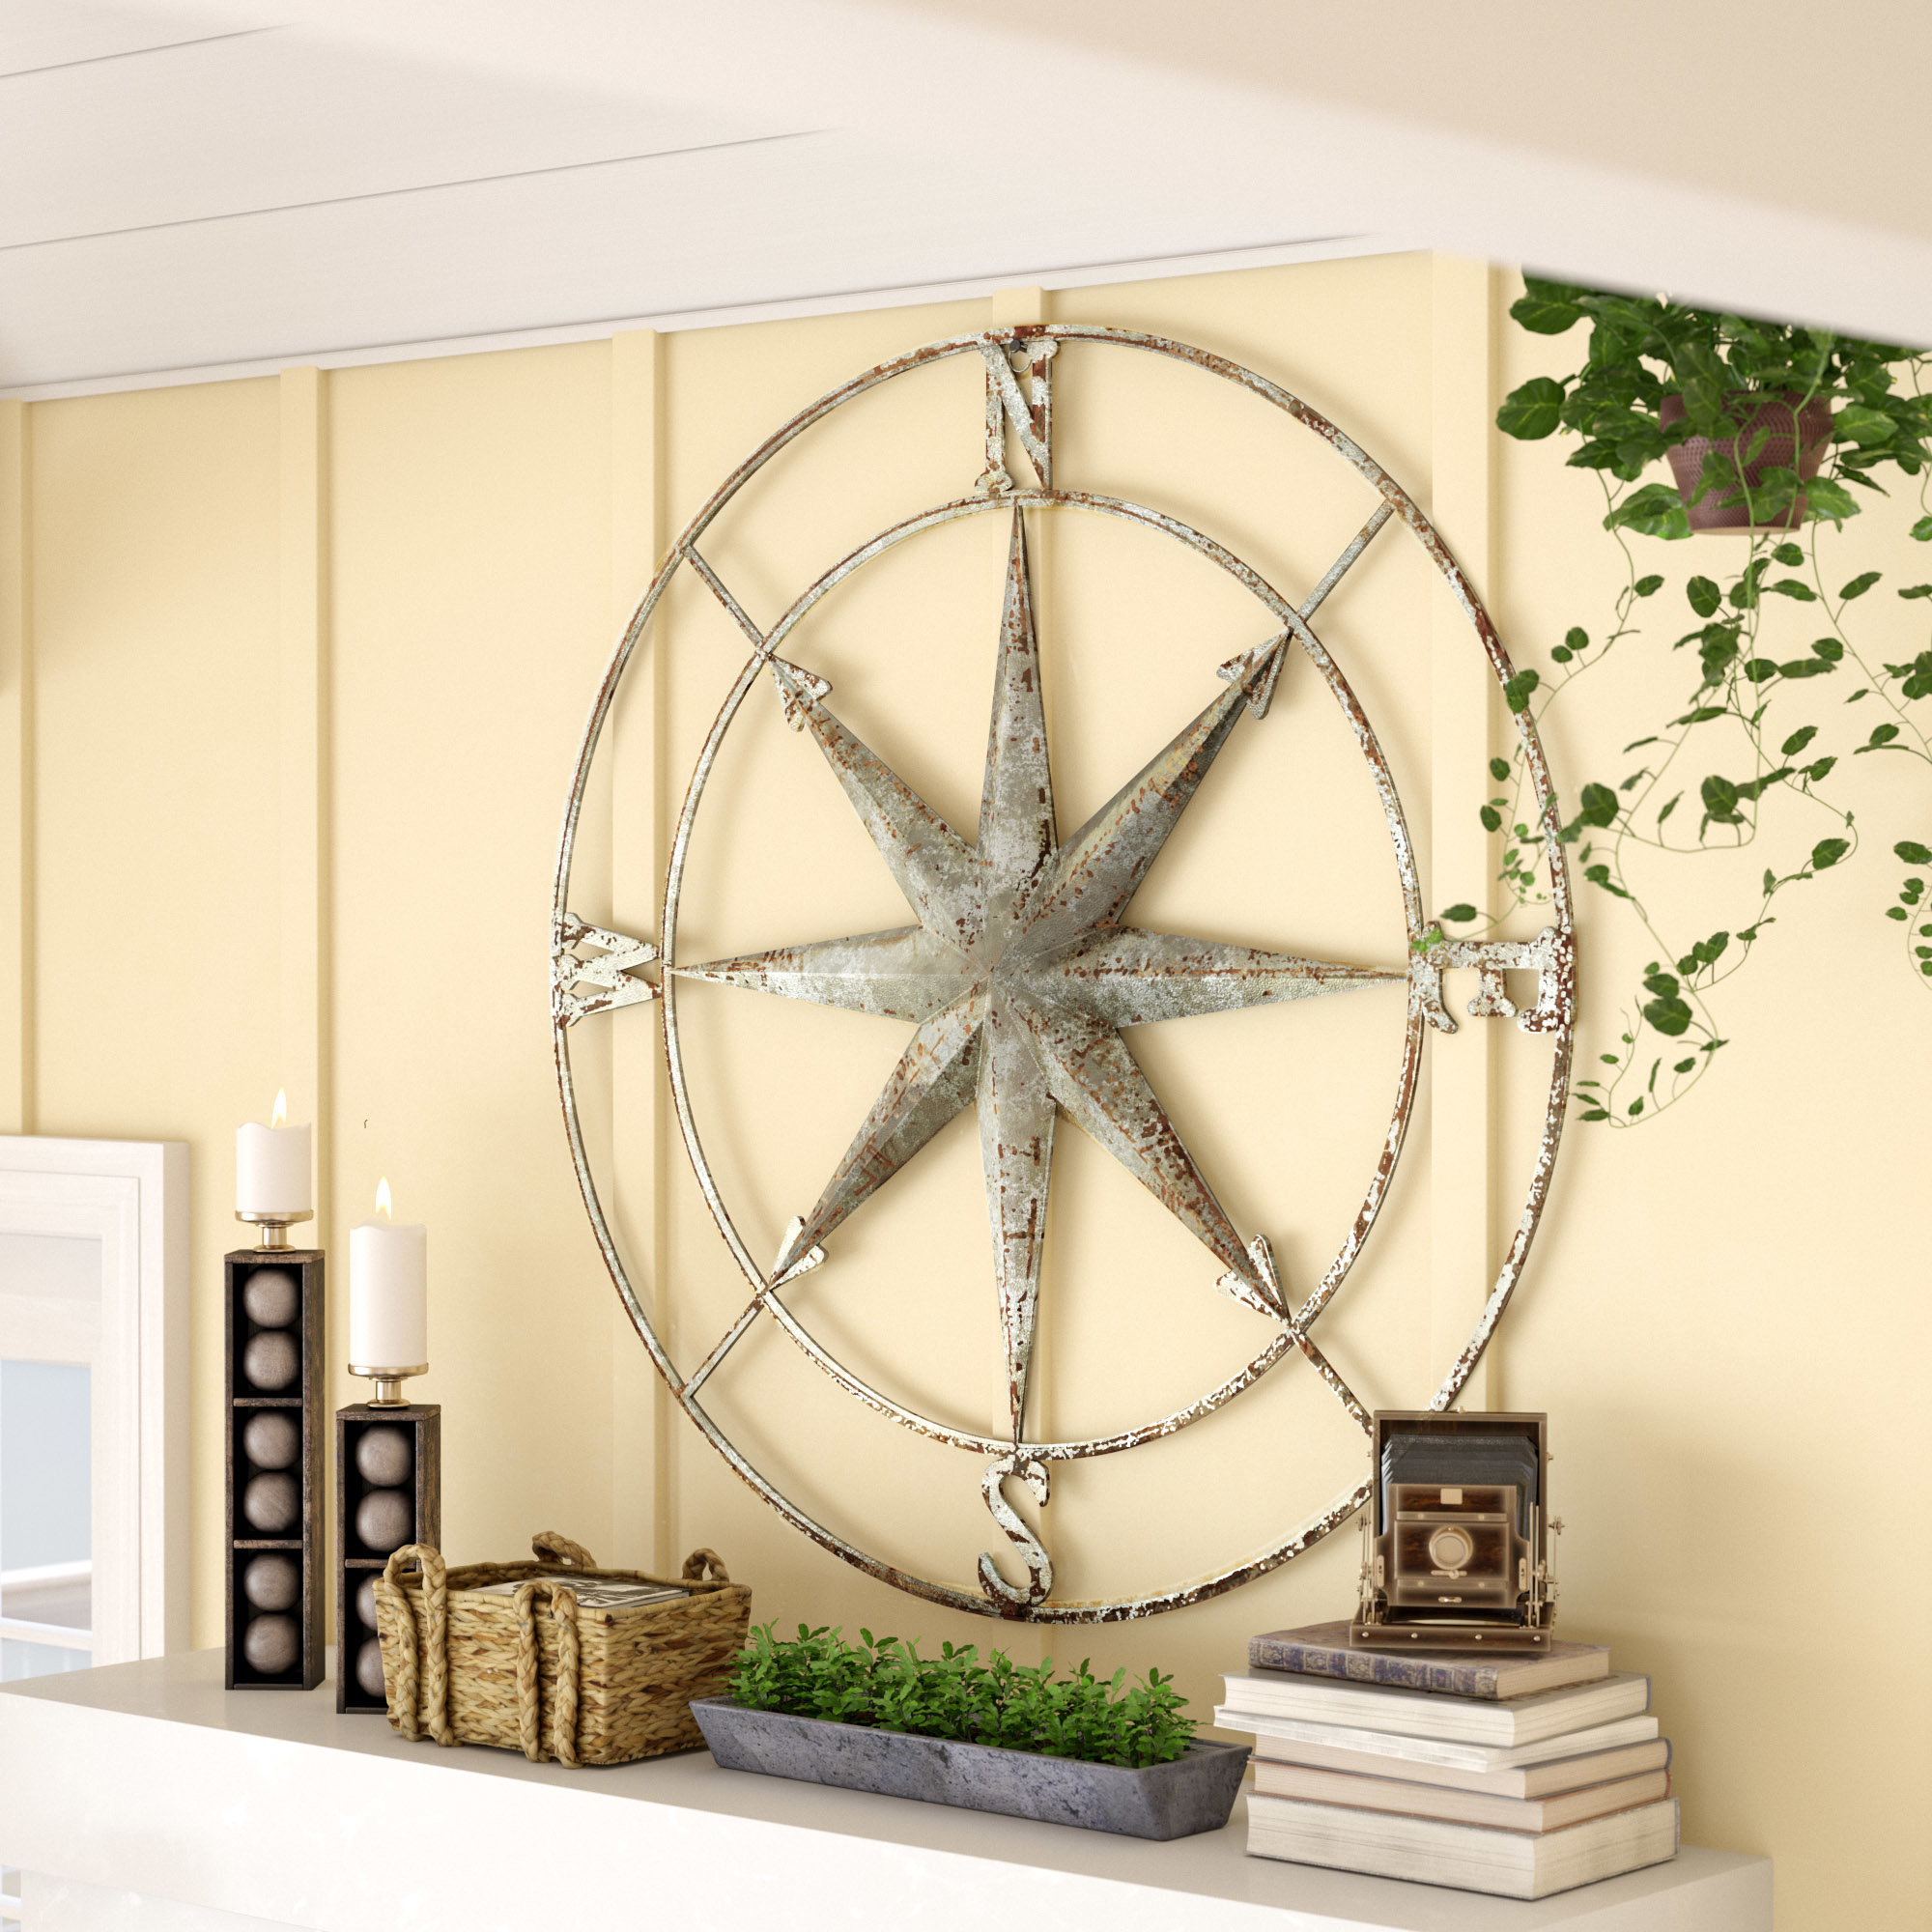 Blue Mosaic Wall Decor | Wayfair Pertaining To Round Compass Wall Decor (View 19 of 30)